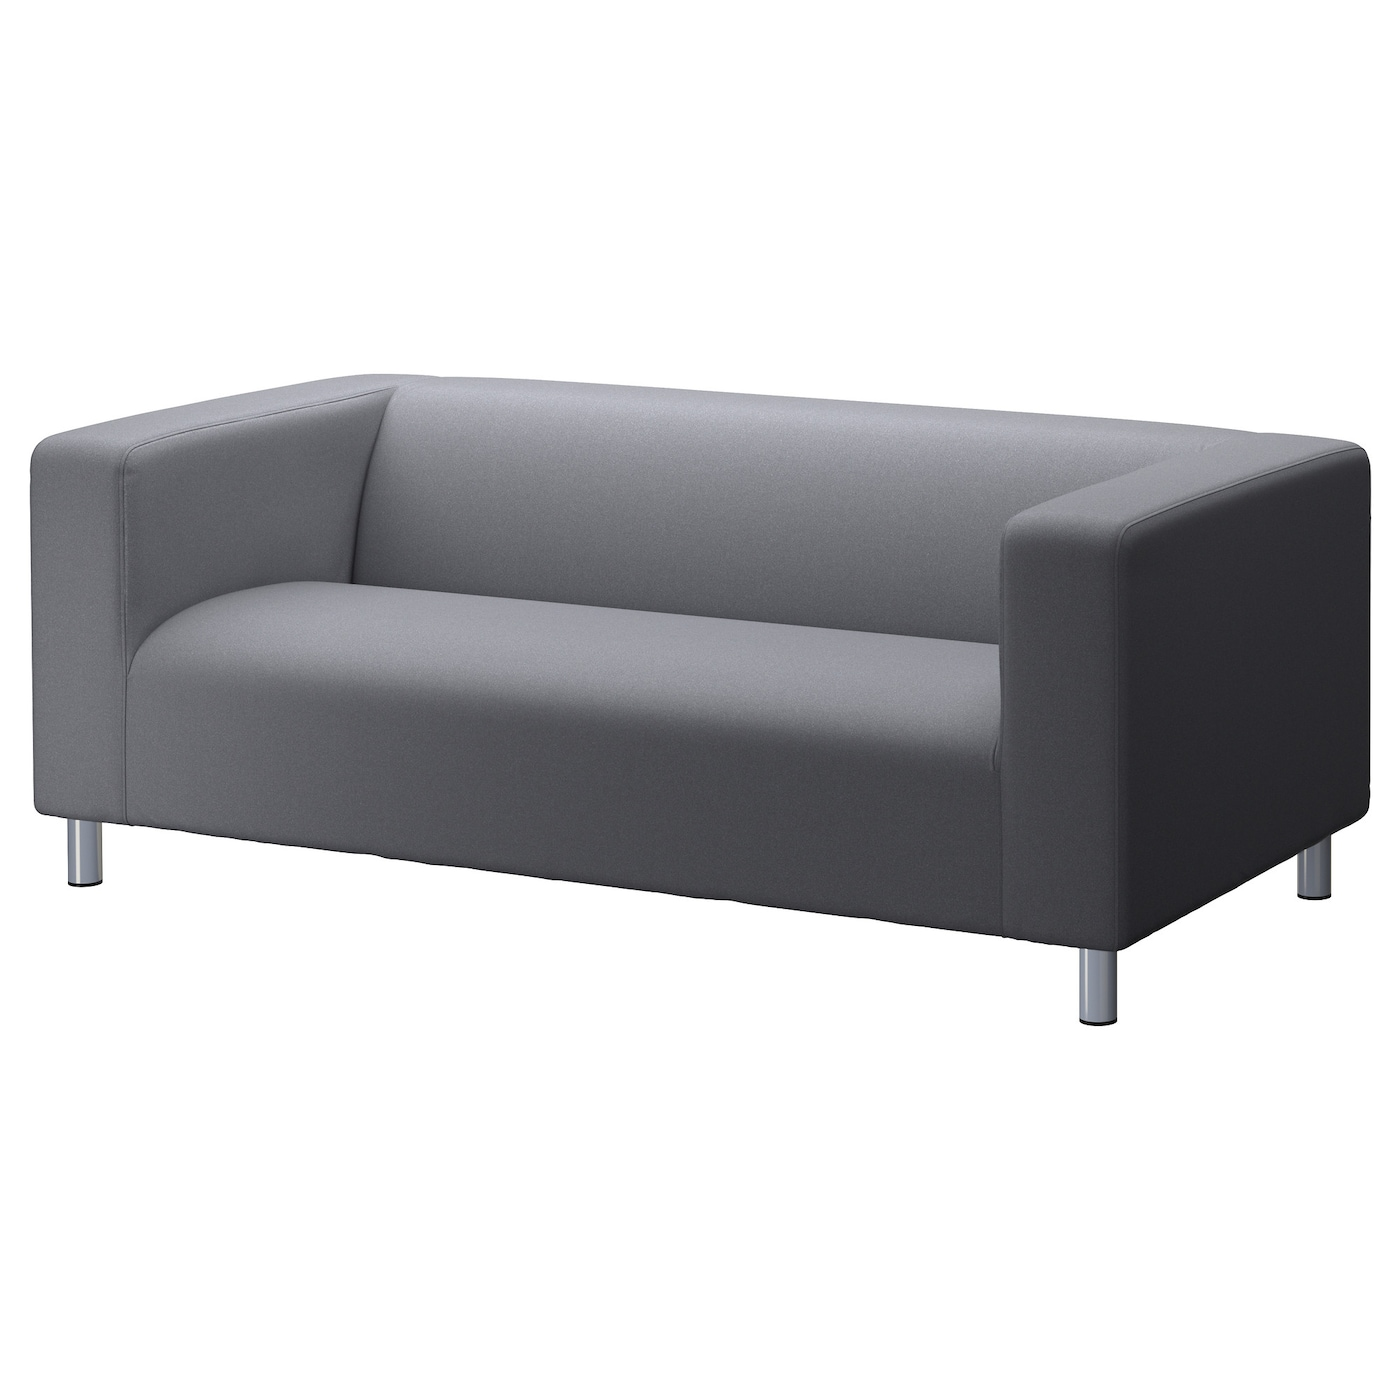 Ikea klippan cover for 2 seat sofa